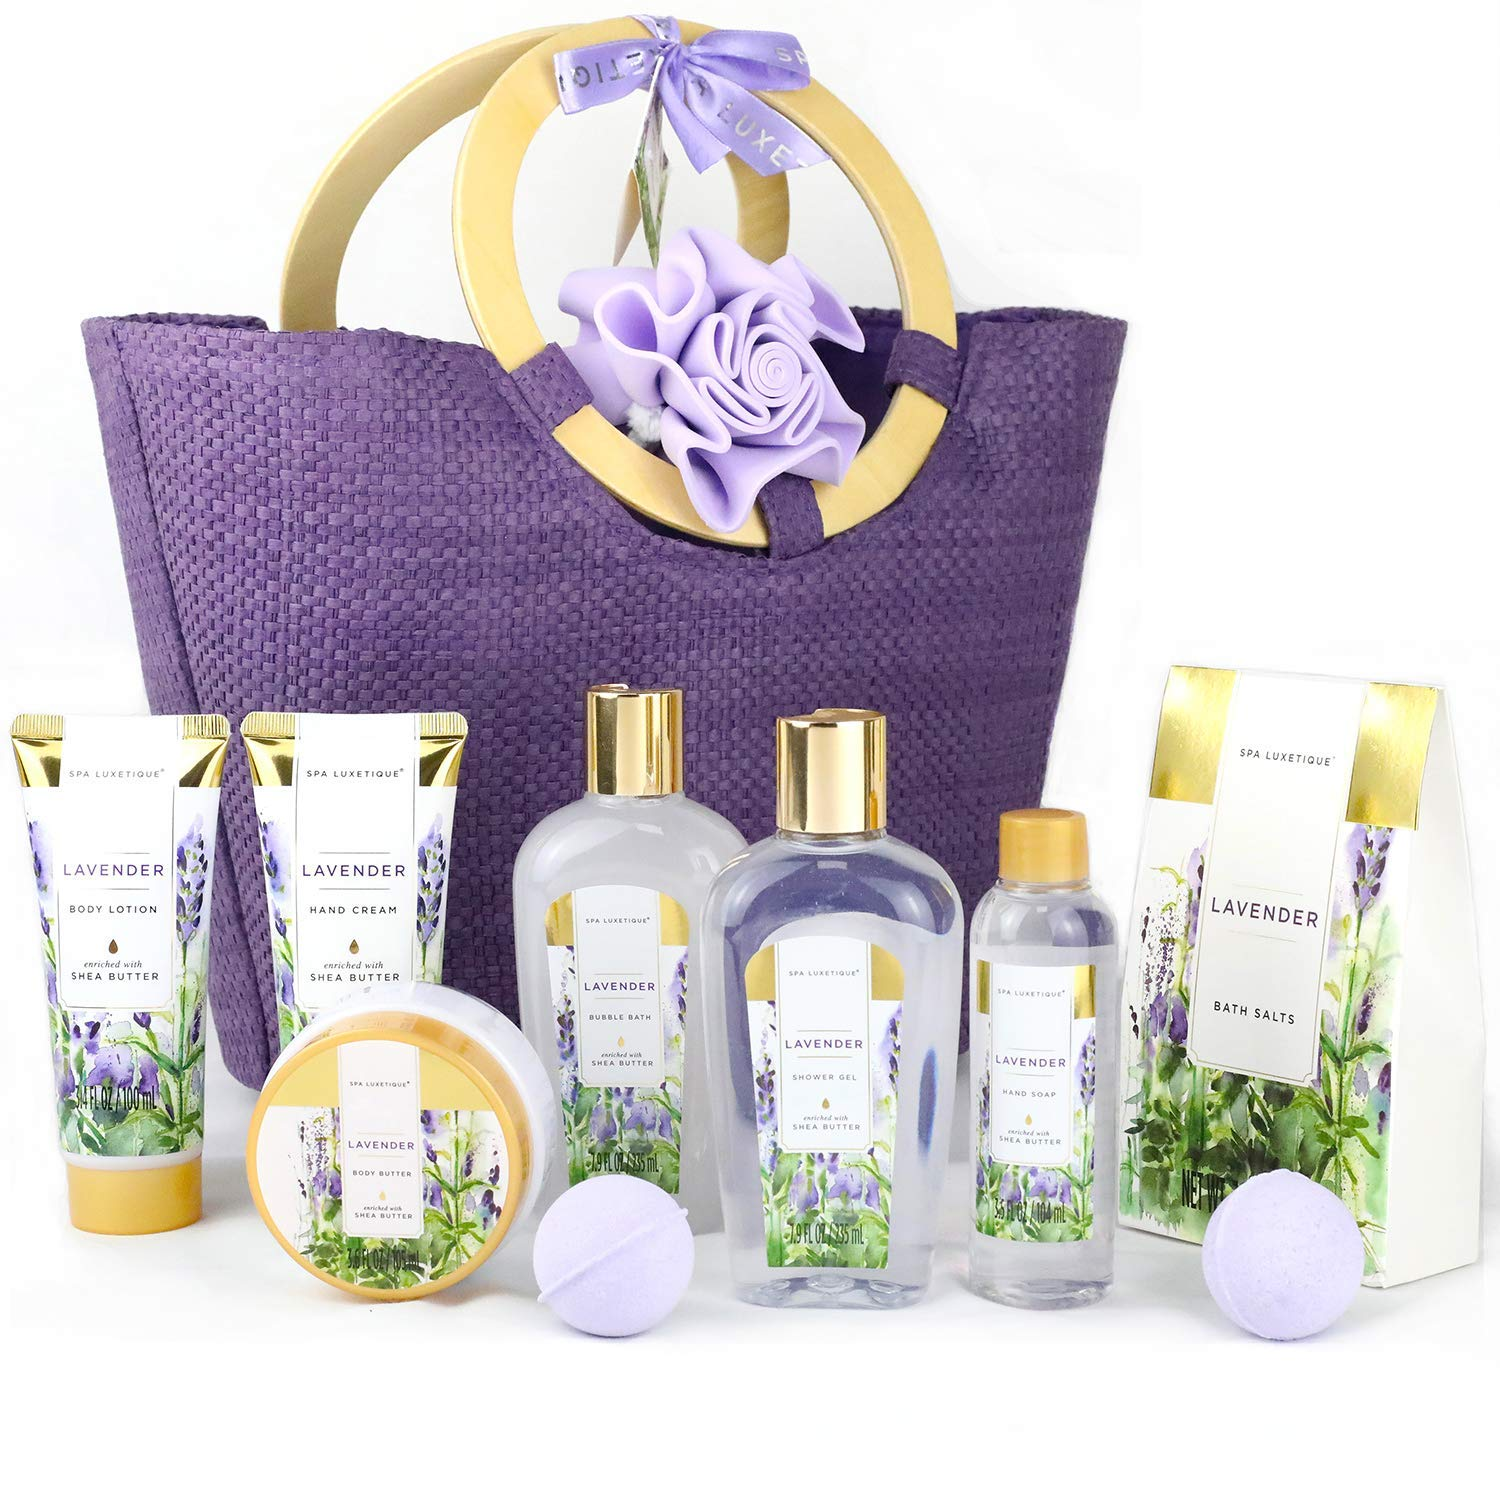 Spa Luxetique Gift Baskets Review